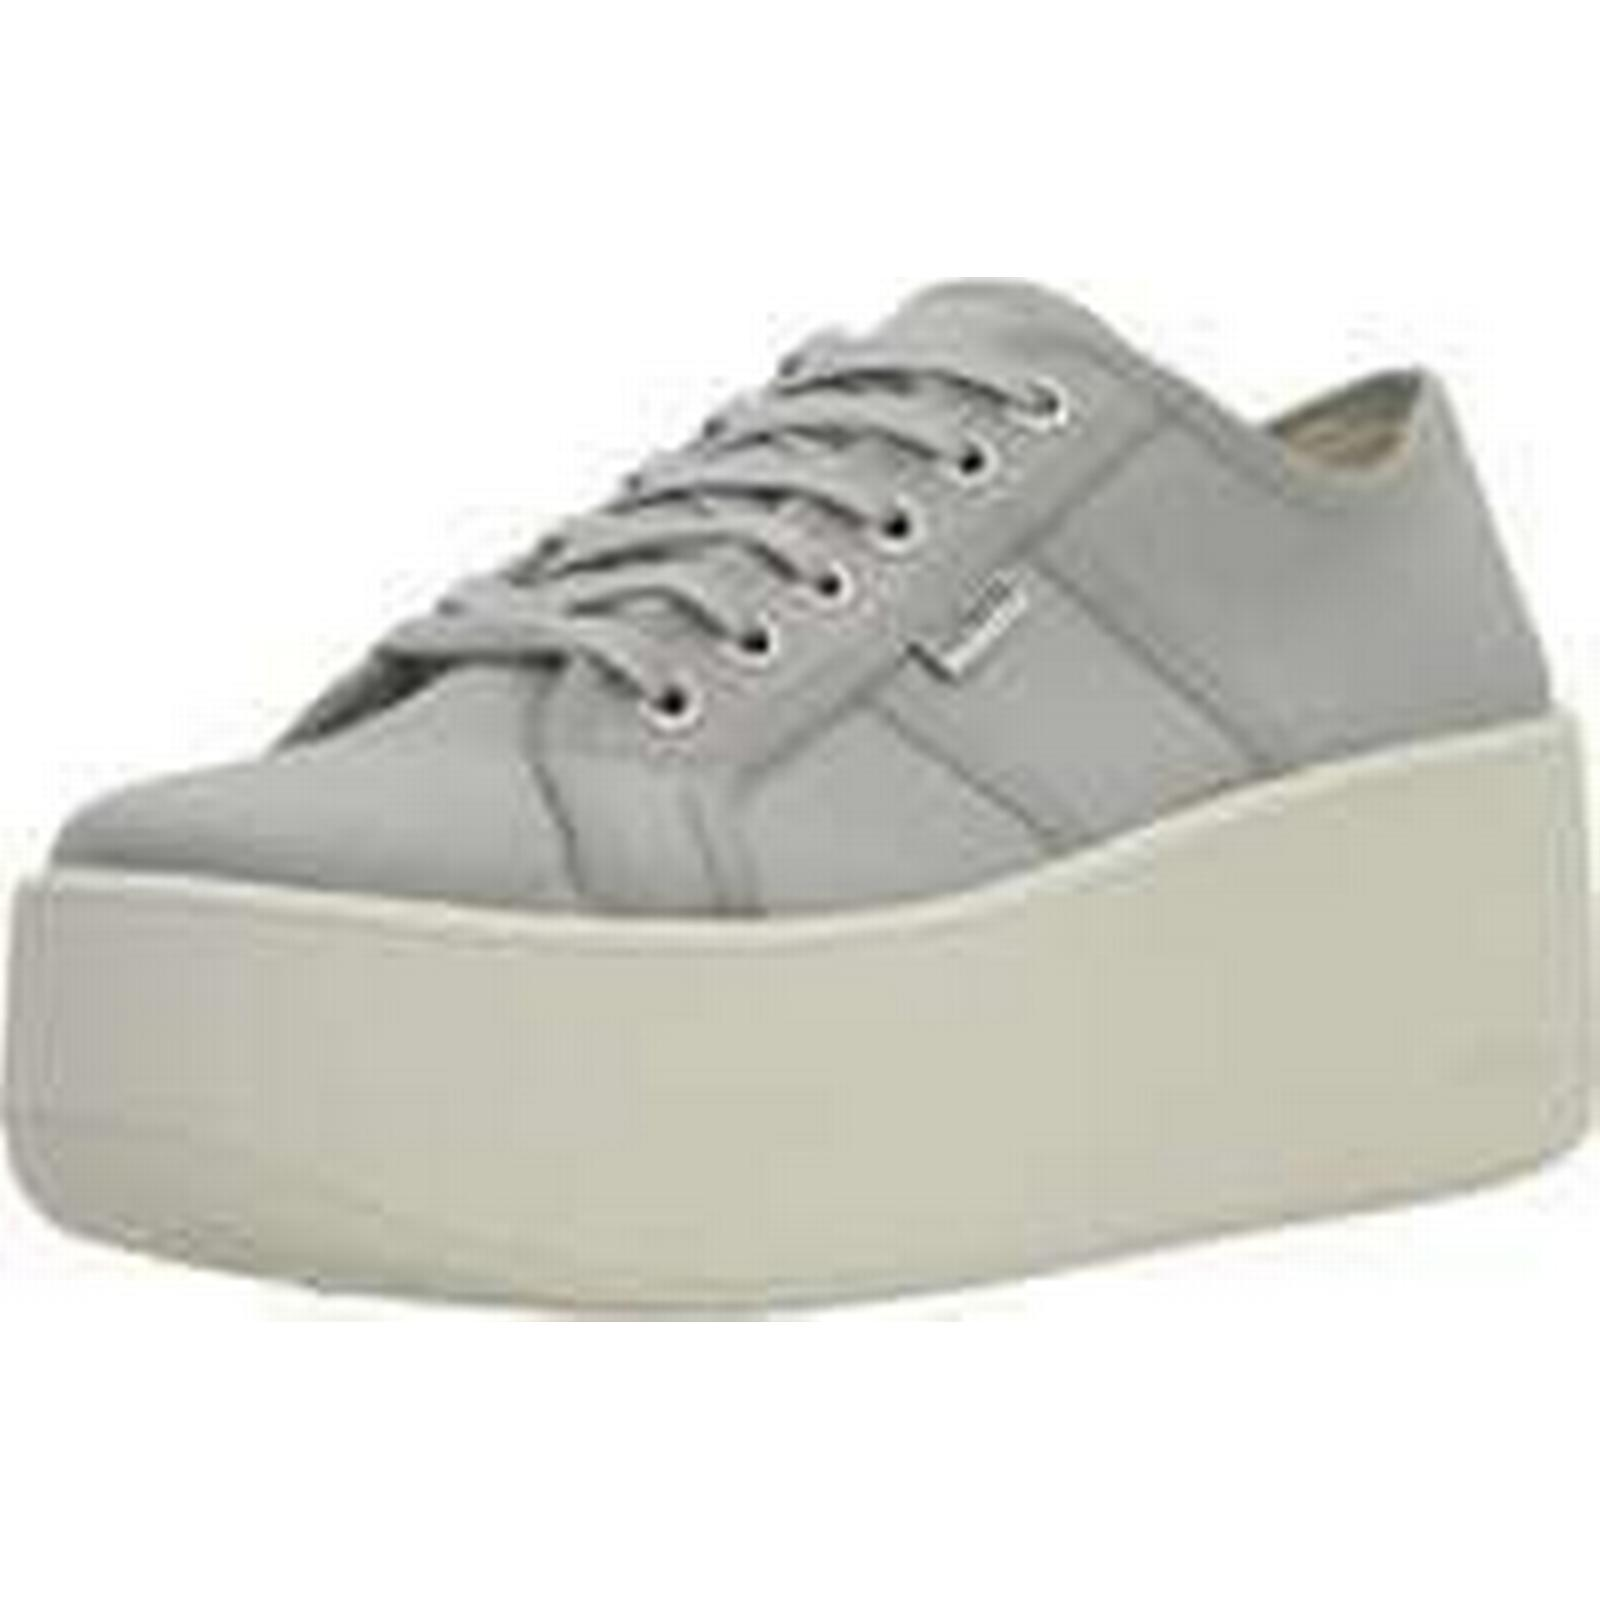 S co amp; Chaussure Formateurs Femmes Victoria uk Spartoo ; YgUaa